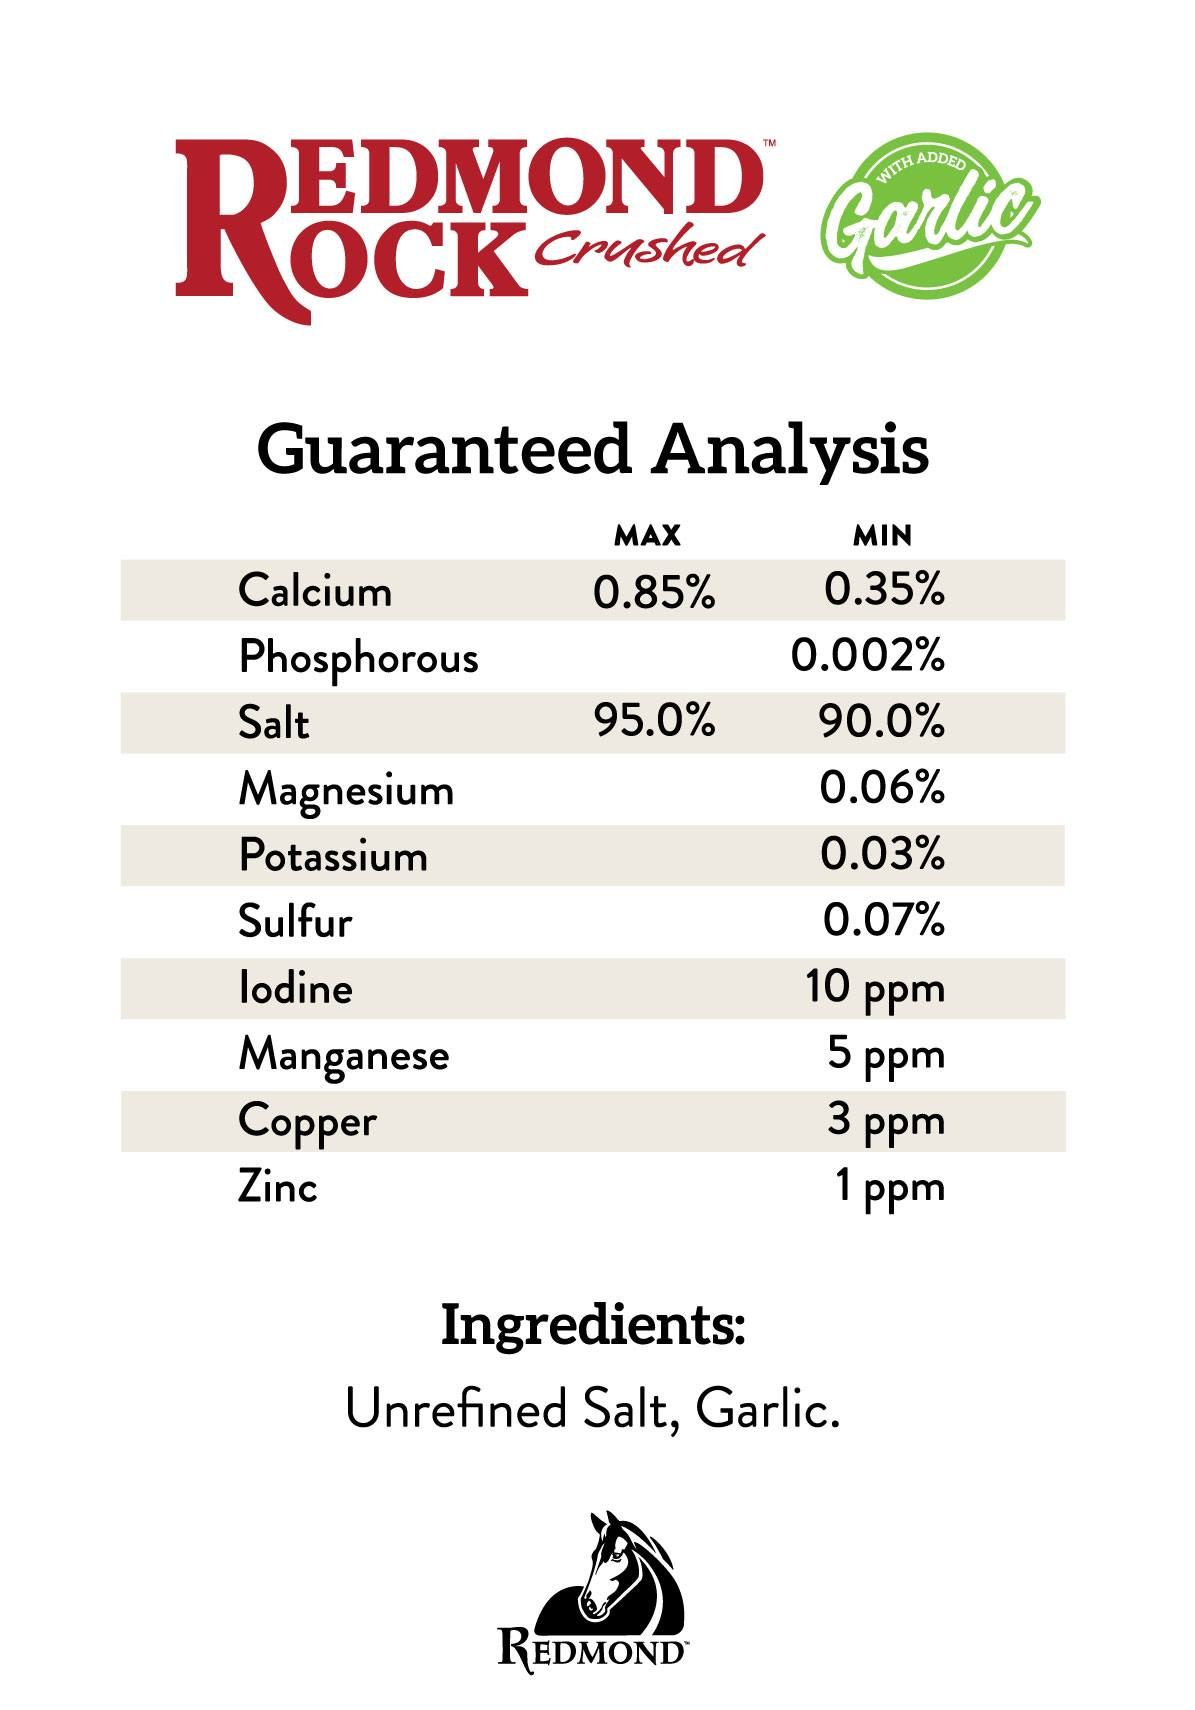 Redmond Rock Crushed Garlic